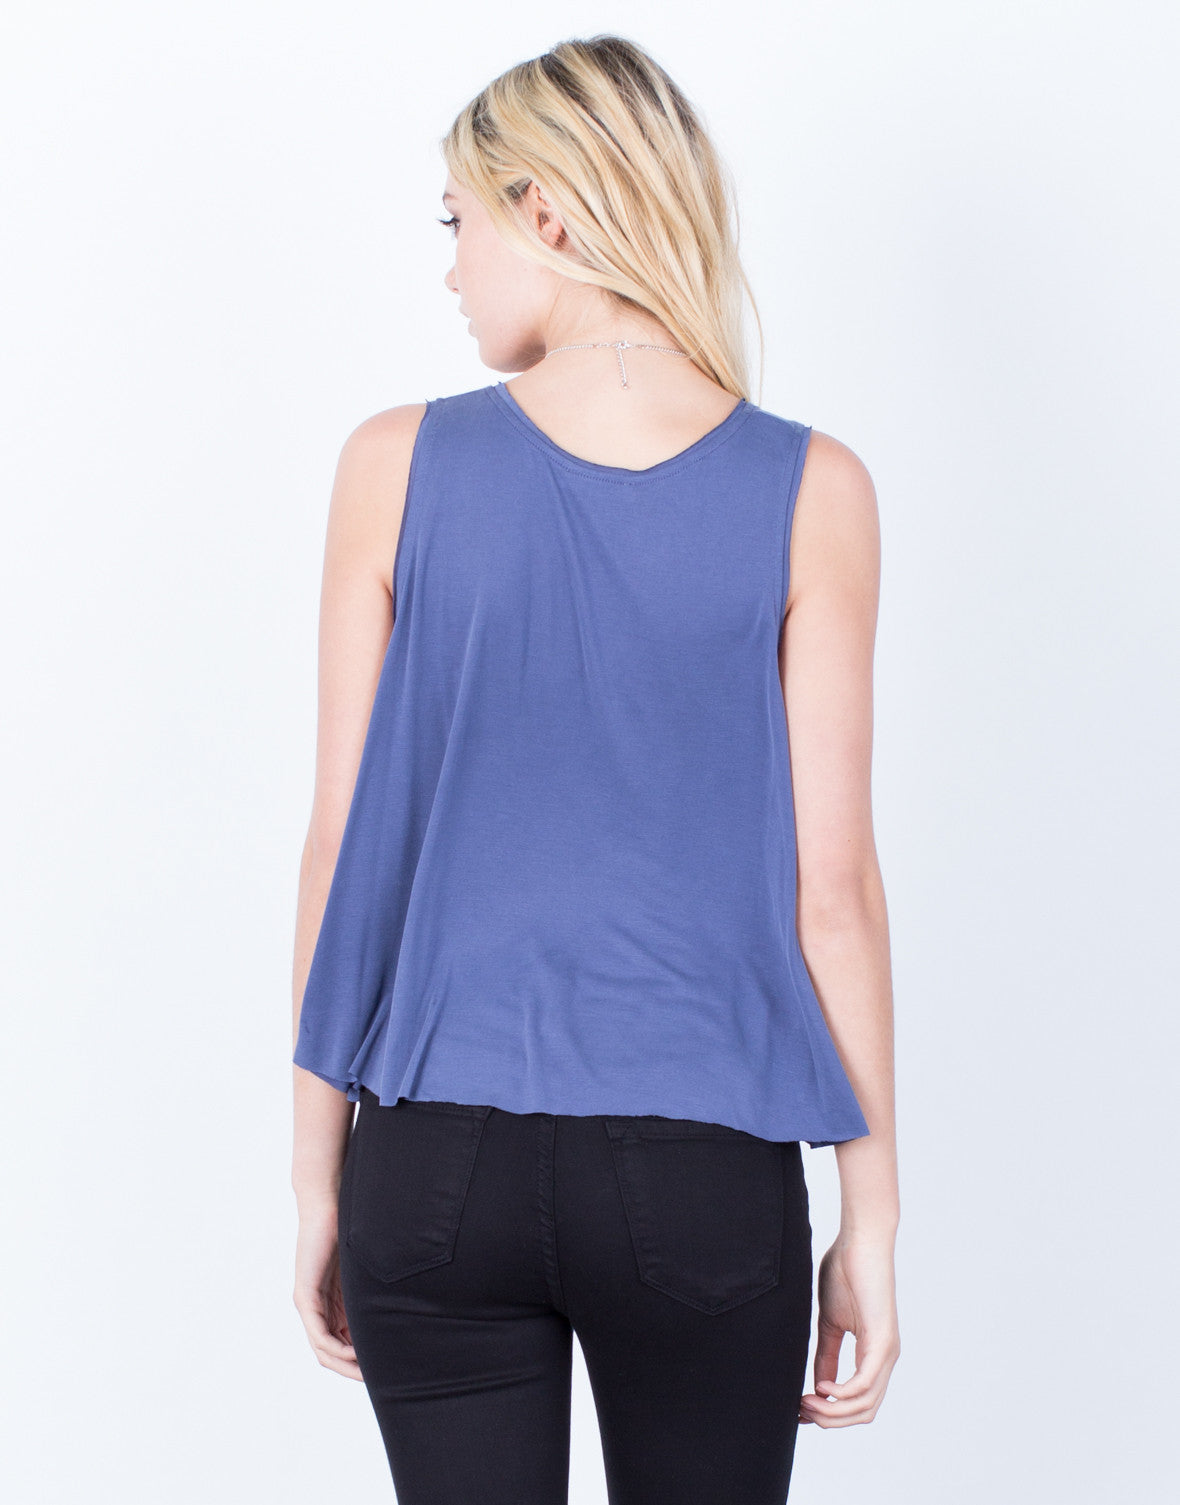 Back View of Flowy Soft Tank Top